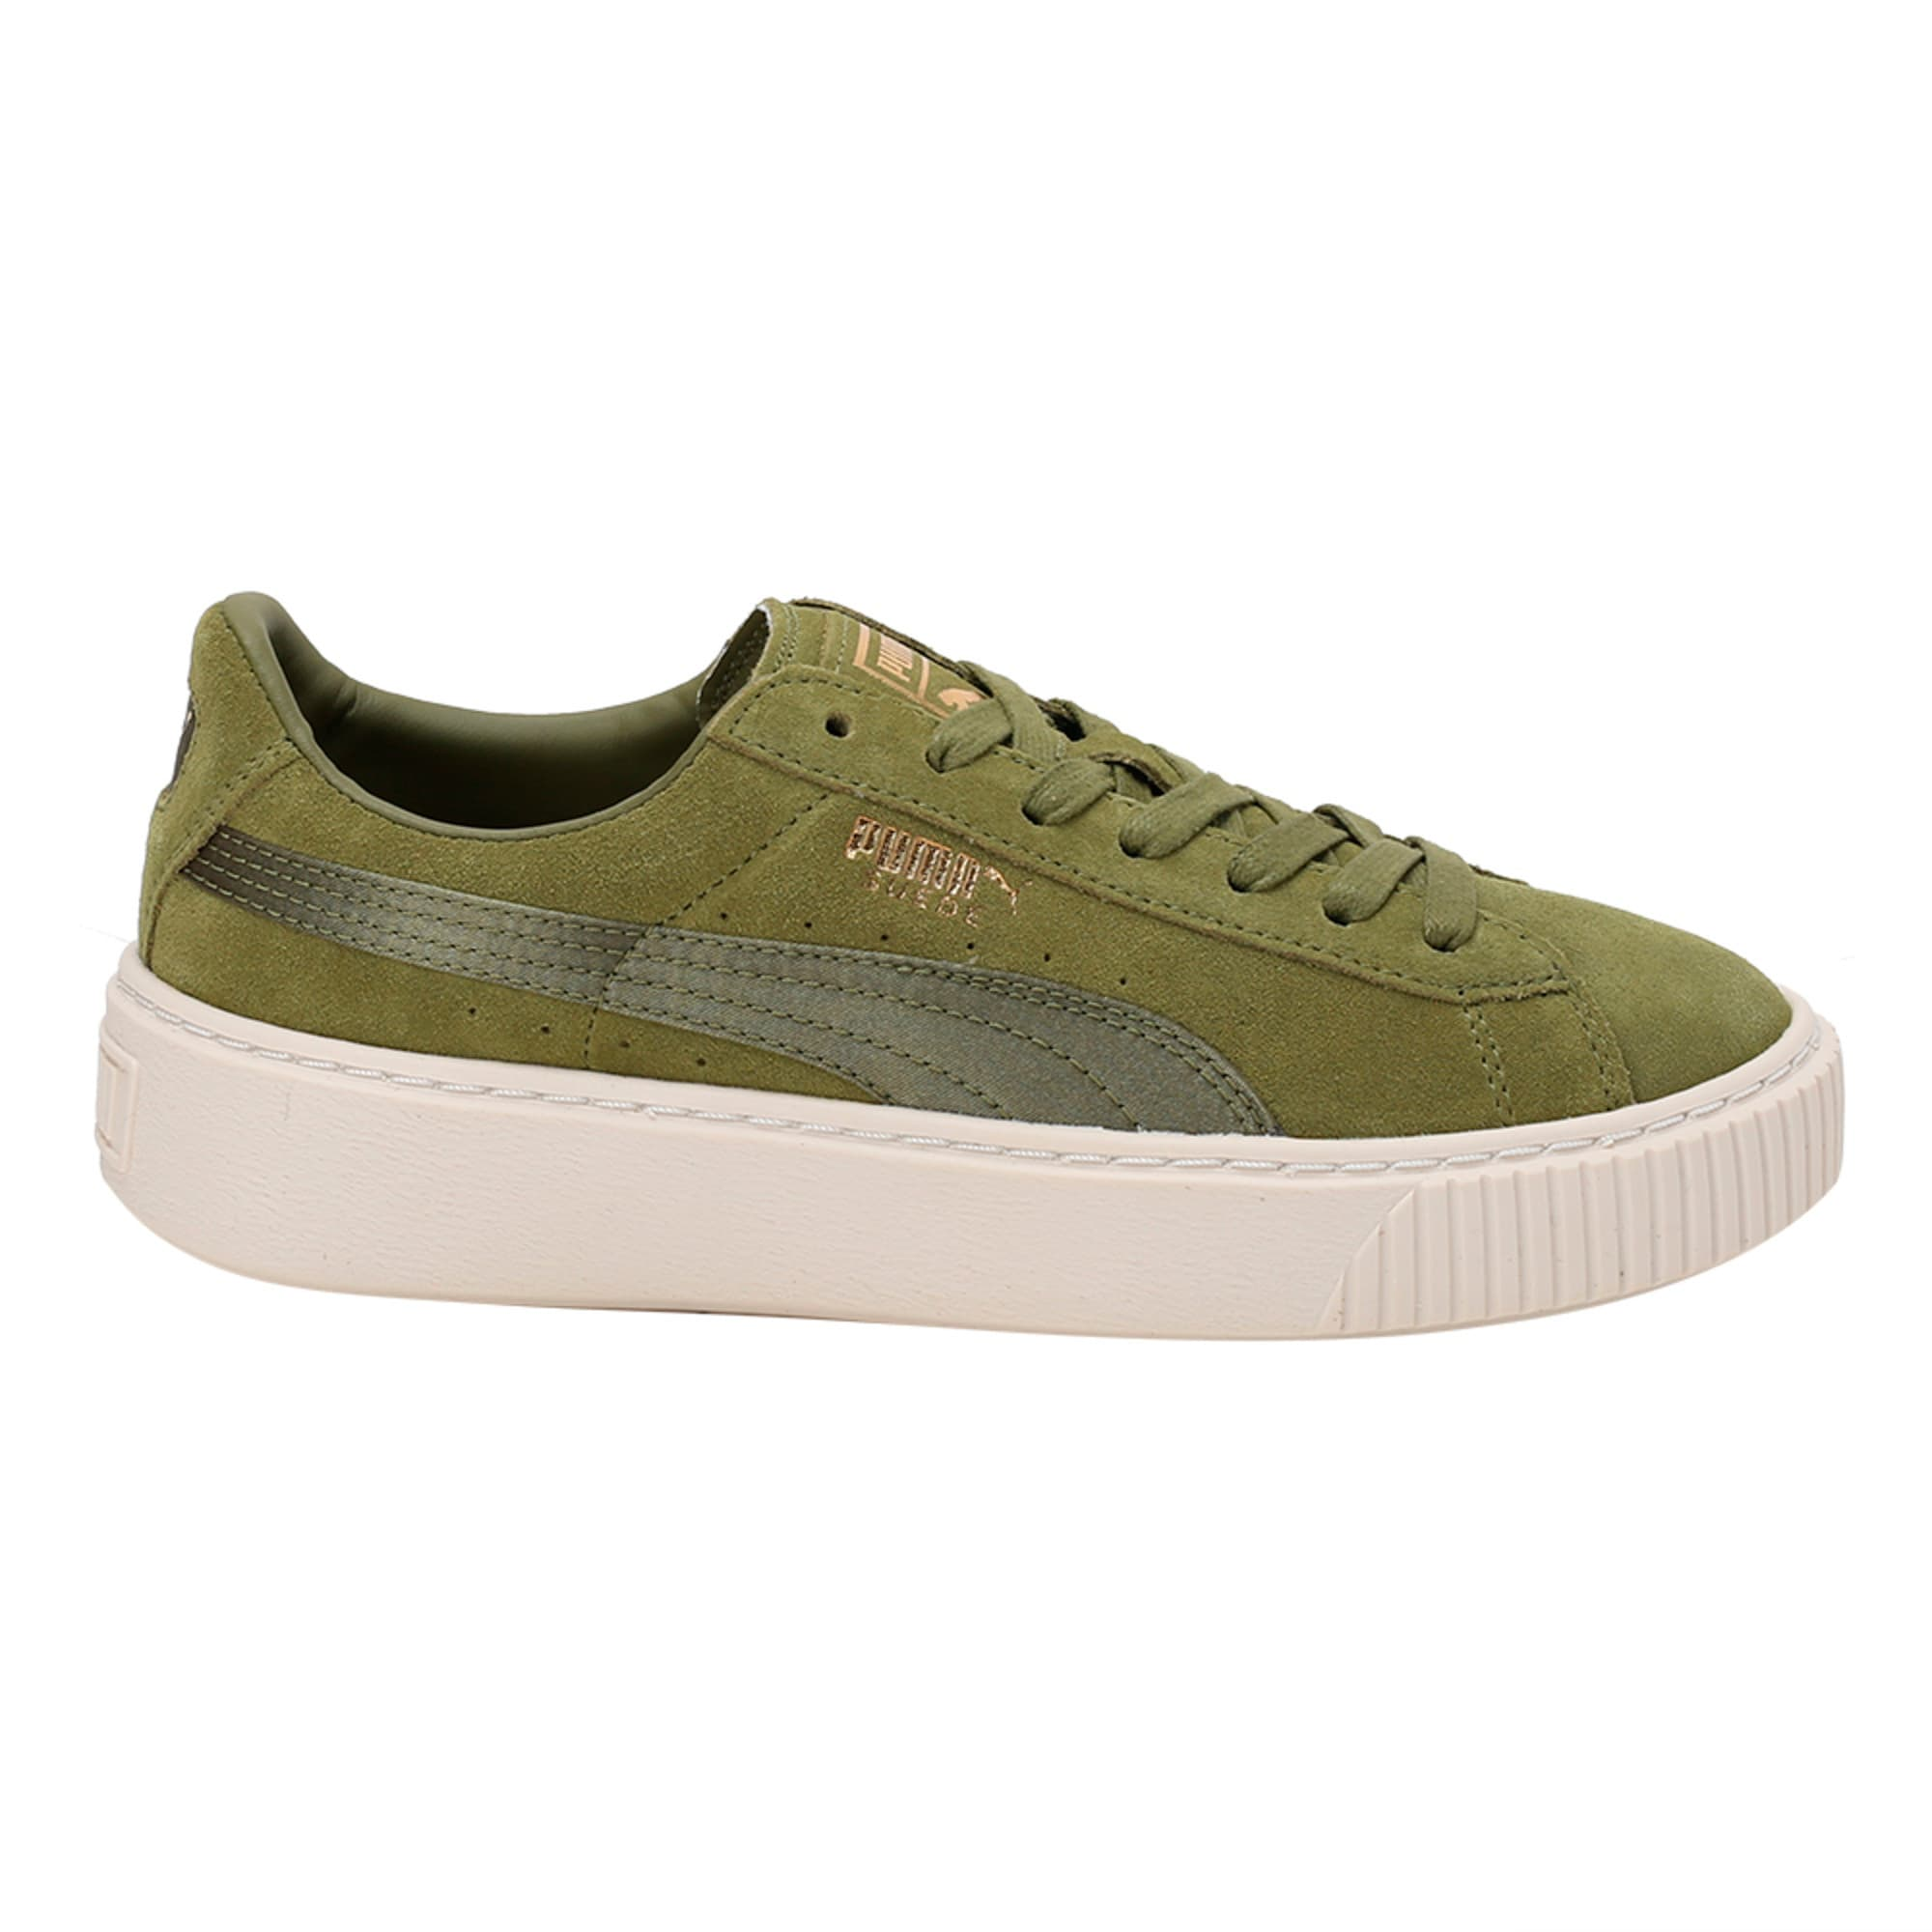 Thumbnail 5 of Suede Platform Satin Women's Trainers, Olive Branch-Whisper- Gold, medium-IND